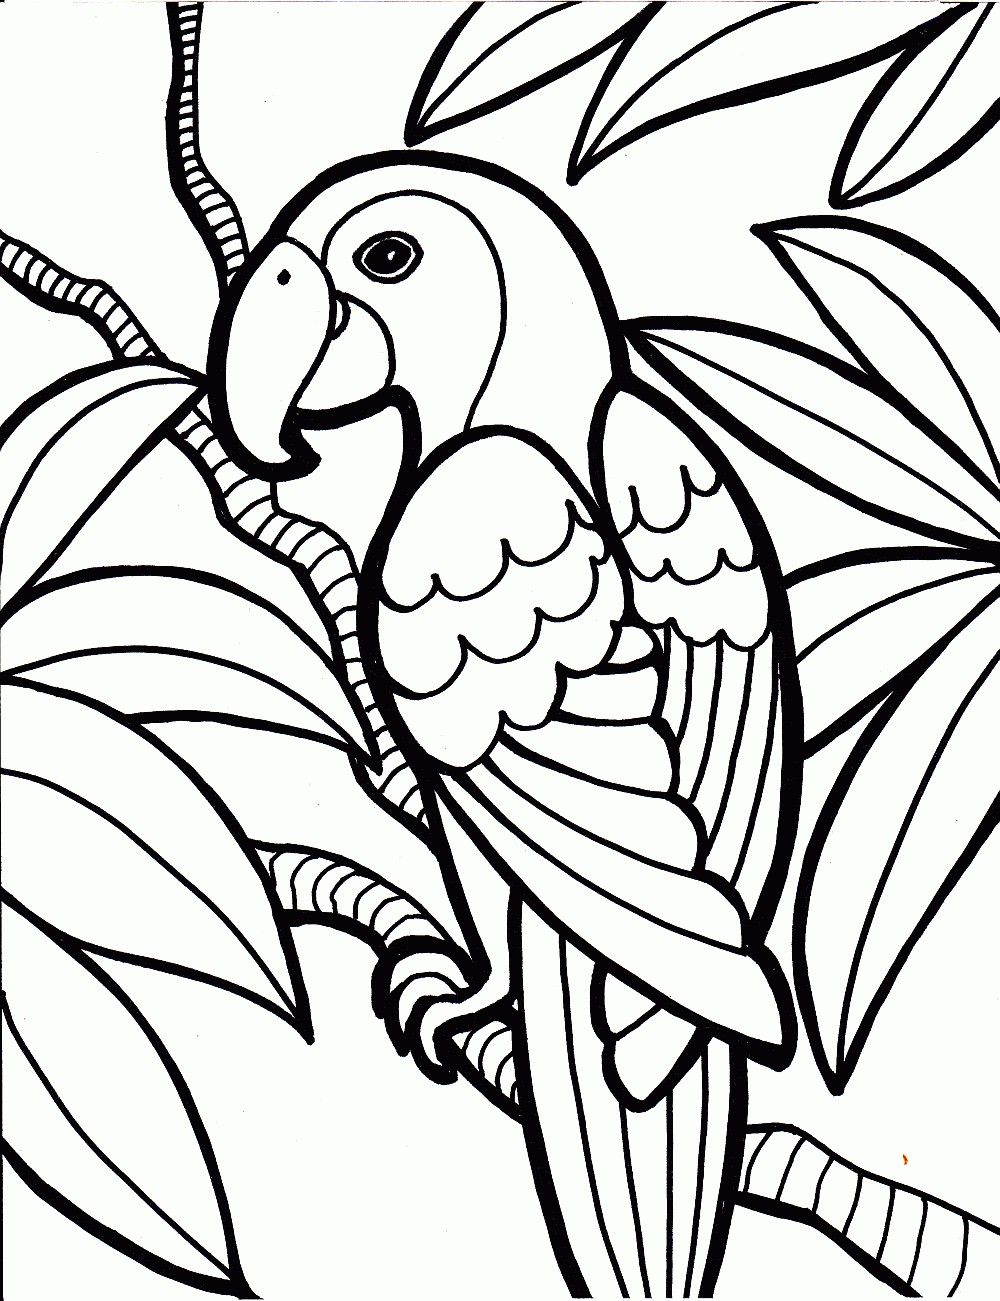 coloring pages 1 05 Jungle coloring pages, Bird coloring